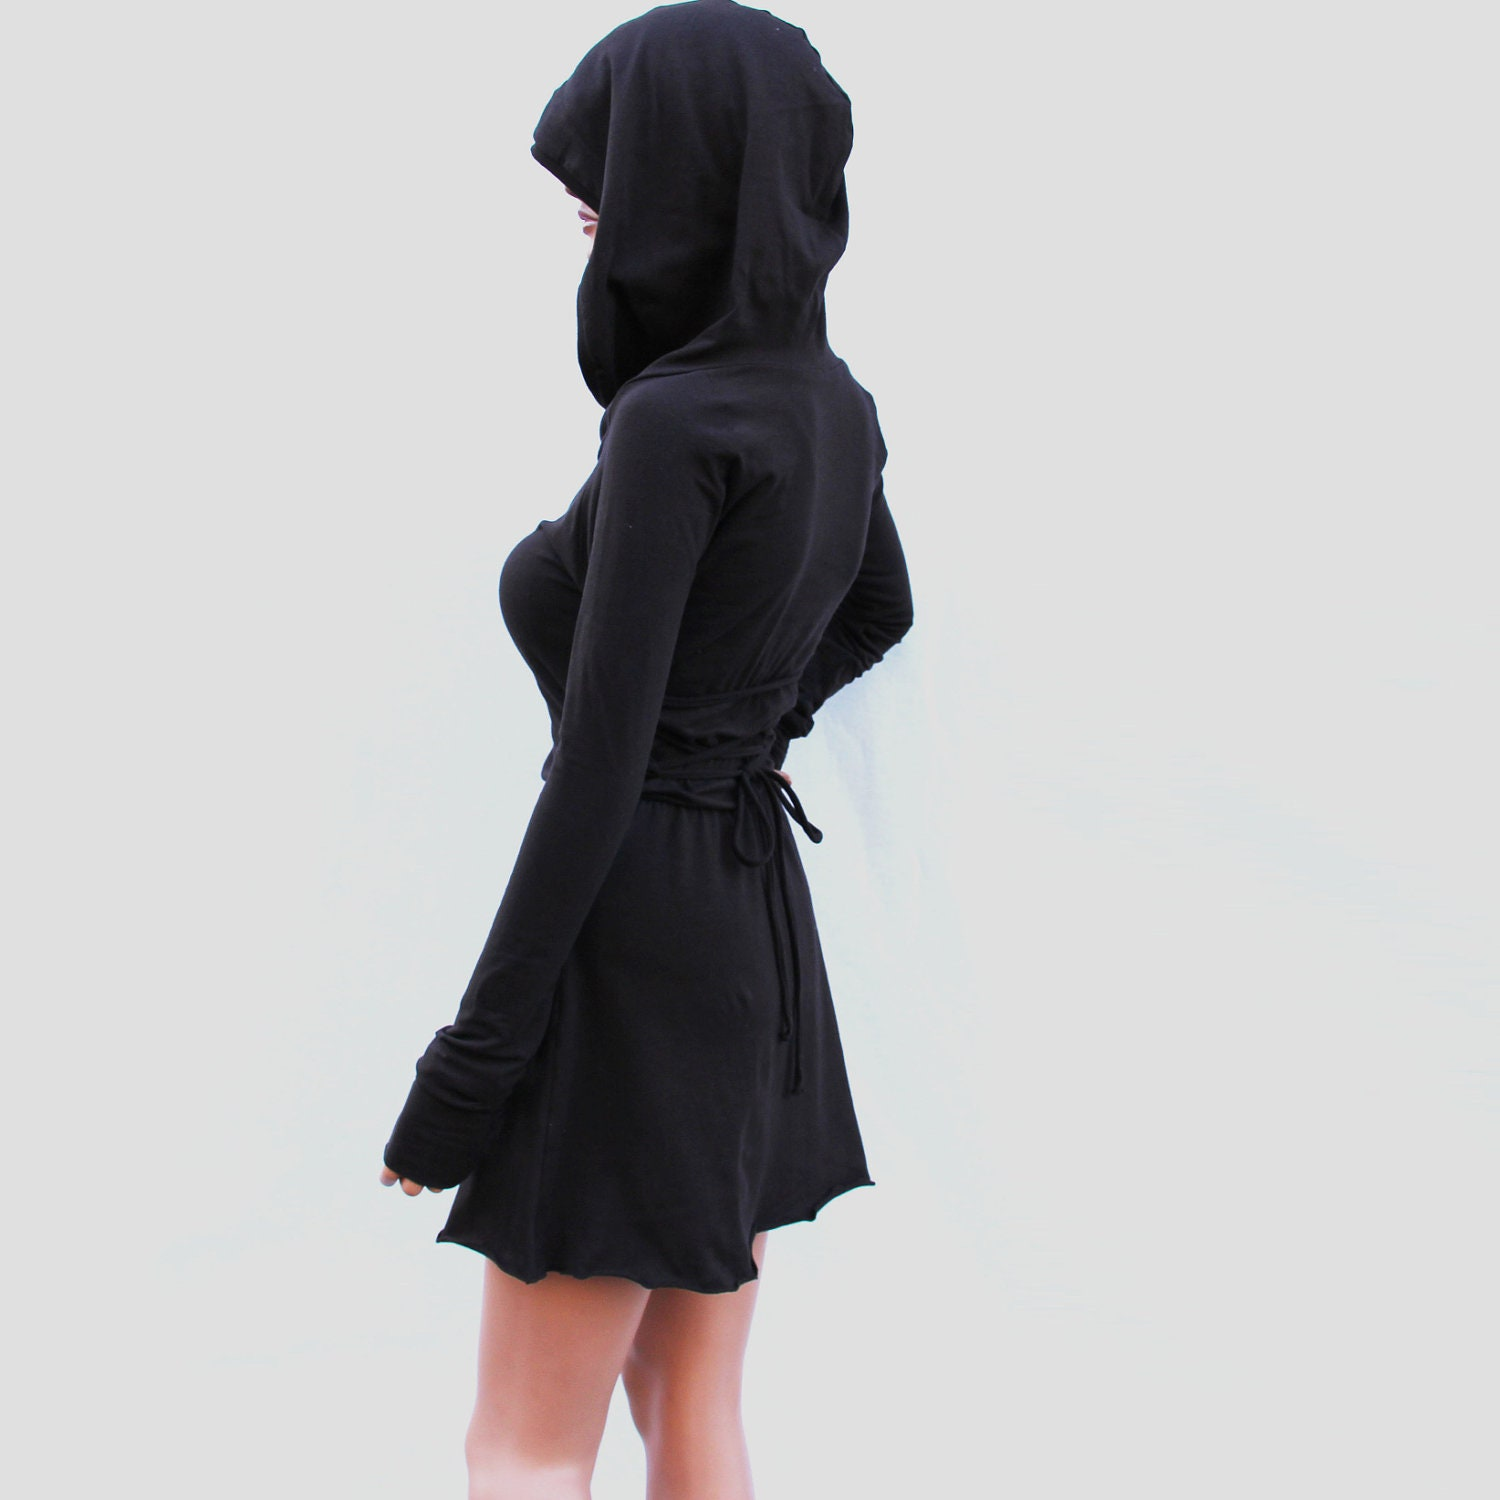 Hooded Dress Pattern Dress / Hoodie Dress / Hooded